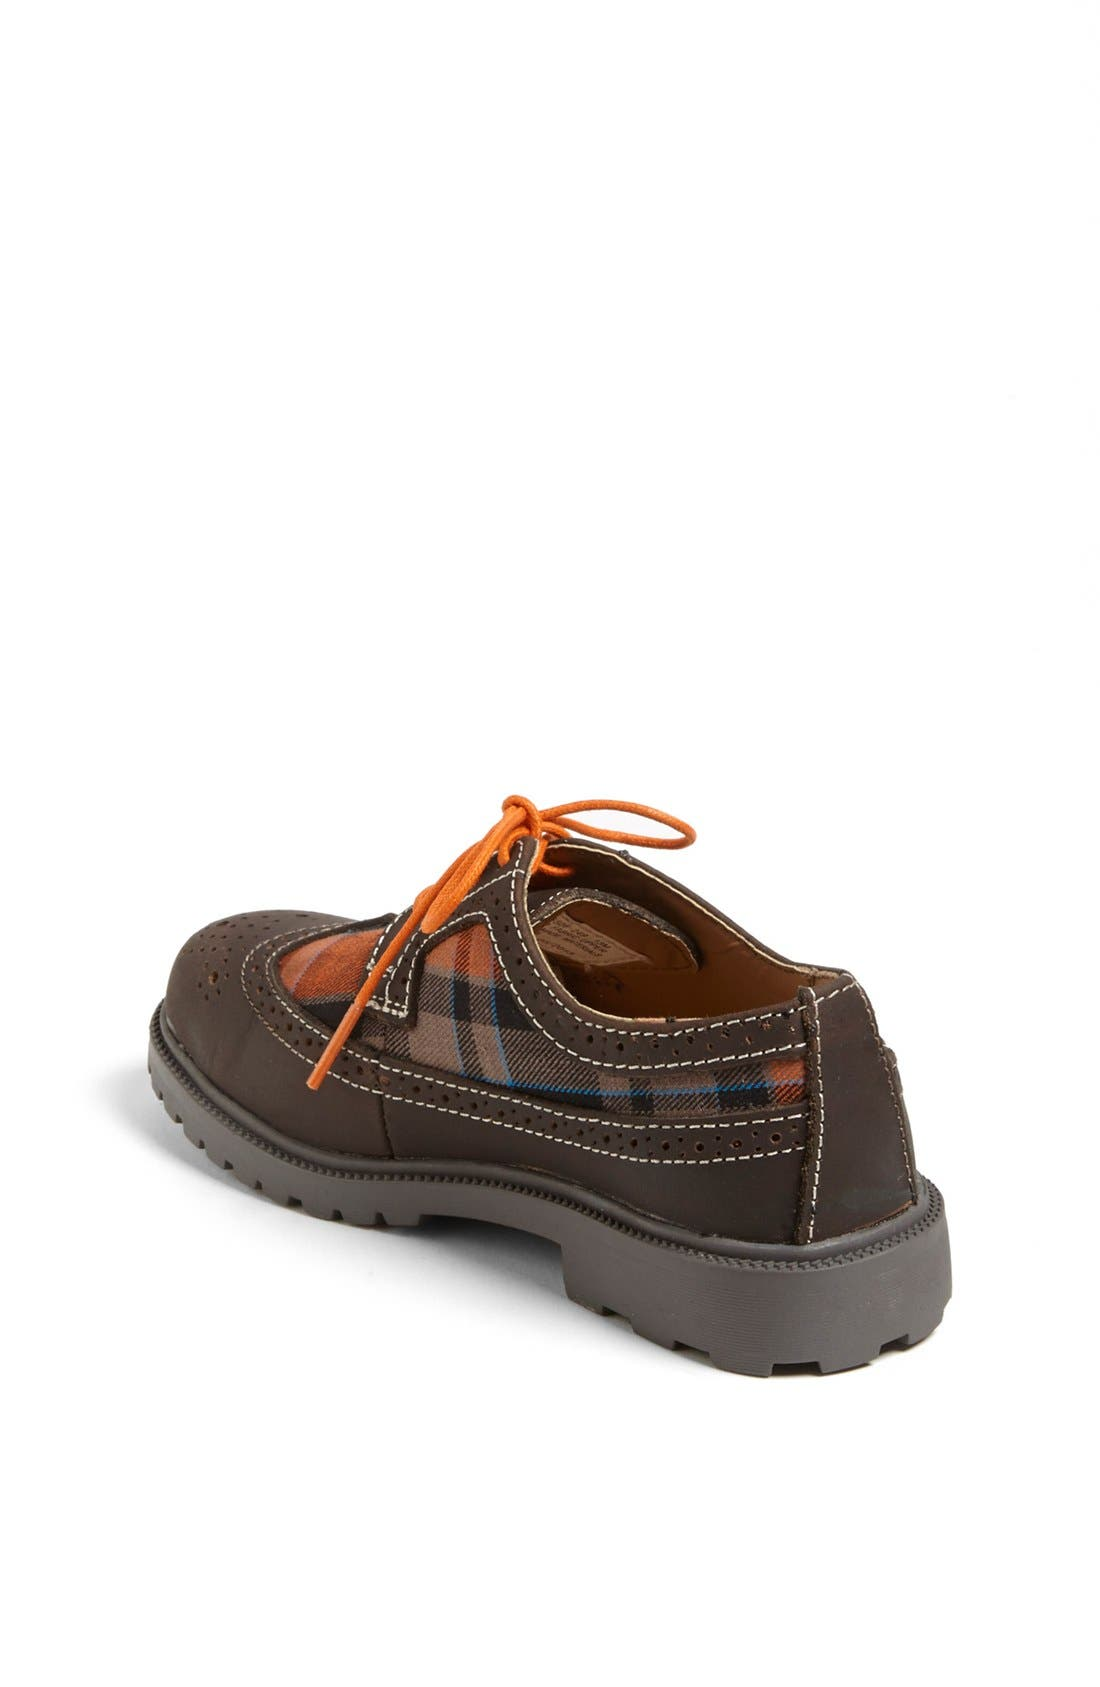 Alternate Image 2  - Florsheim 'Valco Jr.' Wingtip Oxford (Toddler, Little Kid & Big Kid)